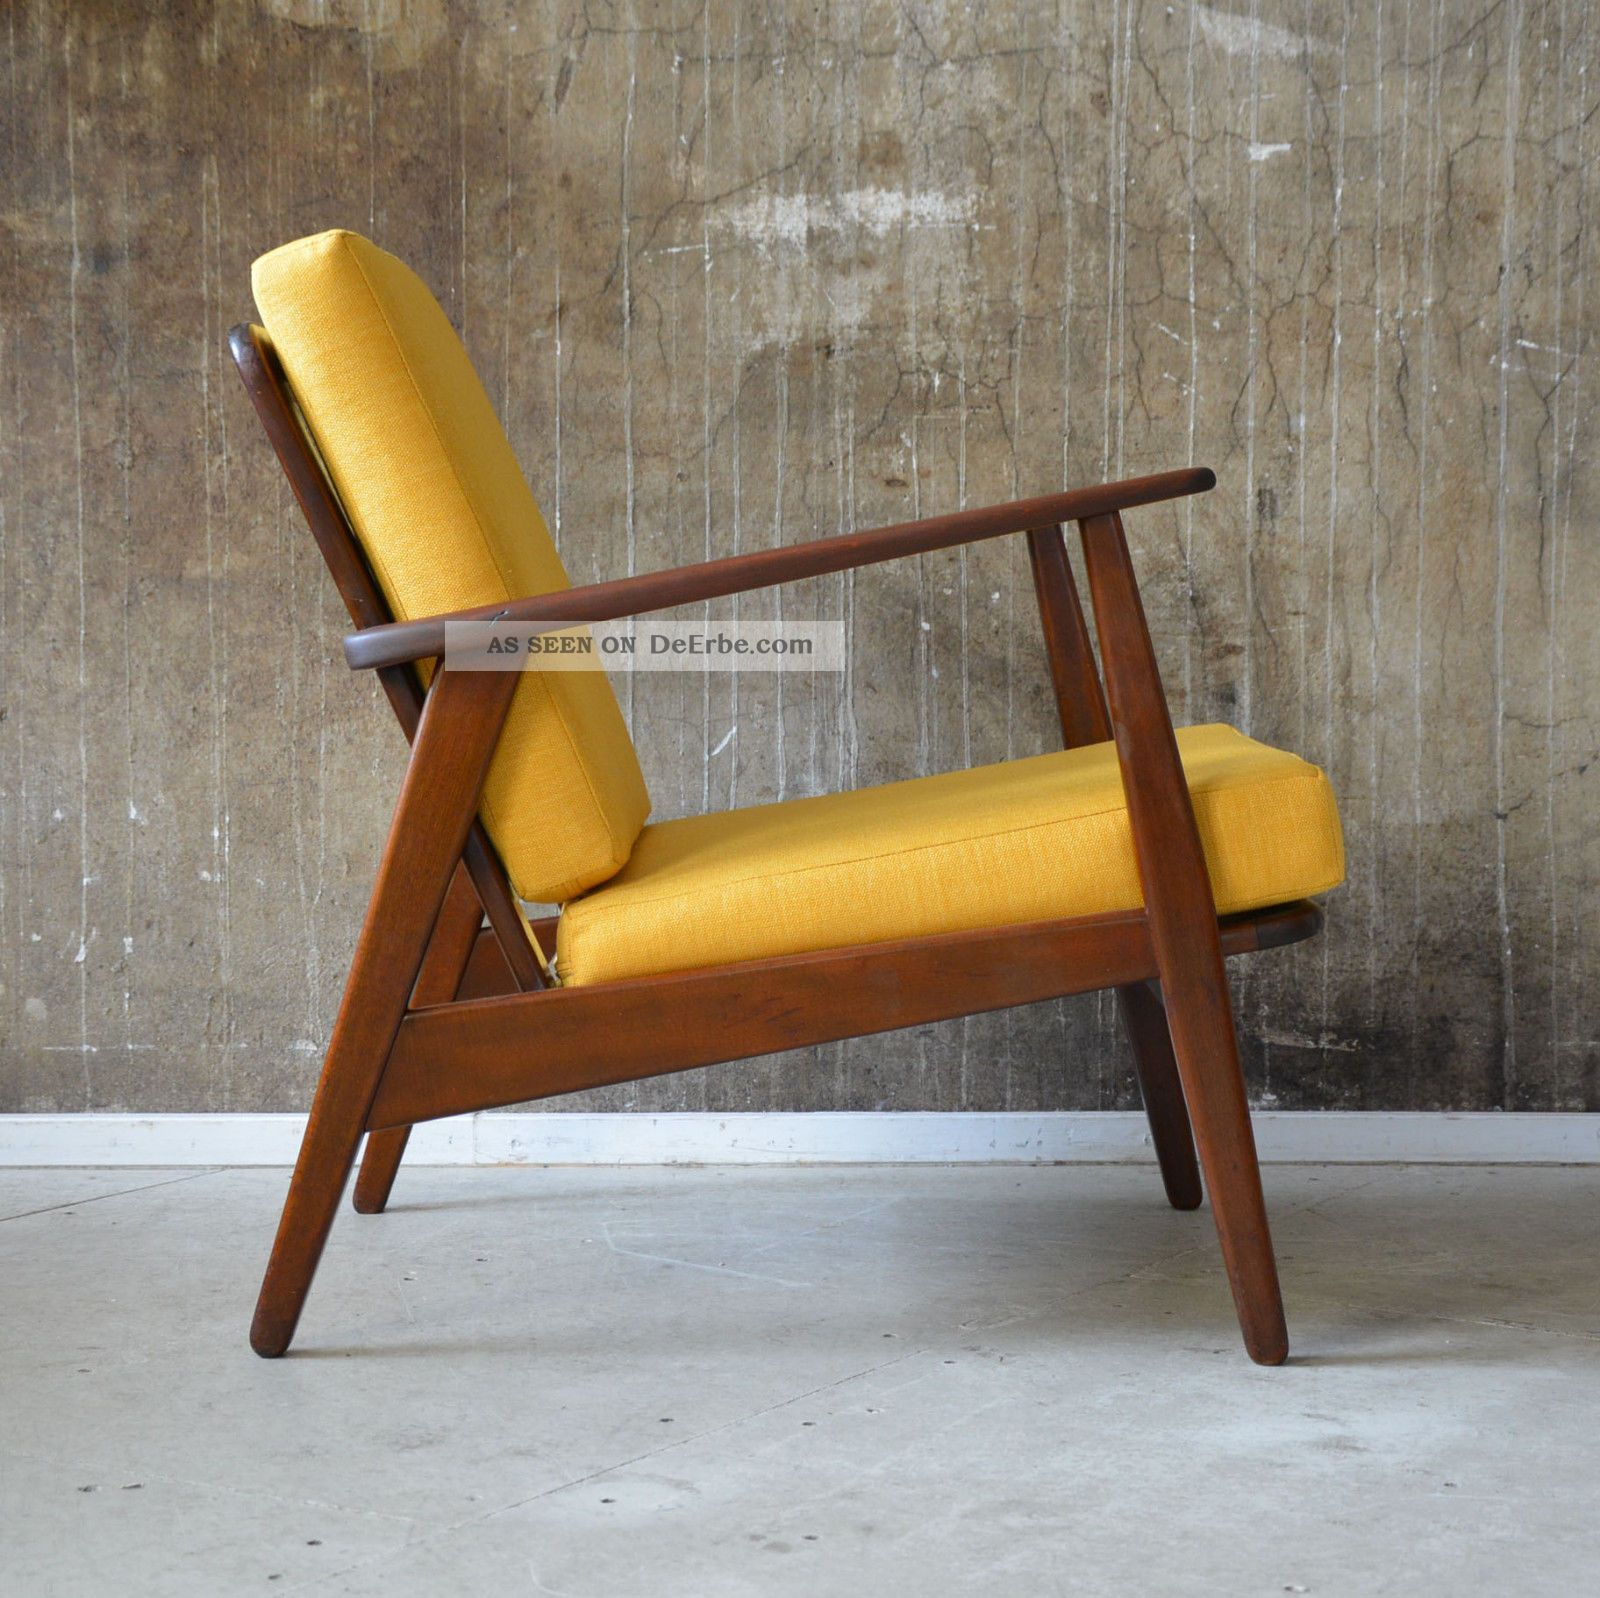 60er teak sessel danish design 60s easy chair vintage for 60er wohnzimmer